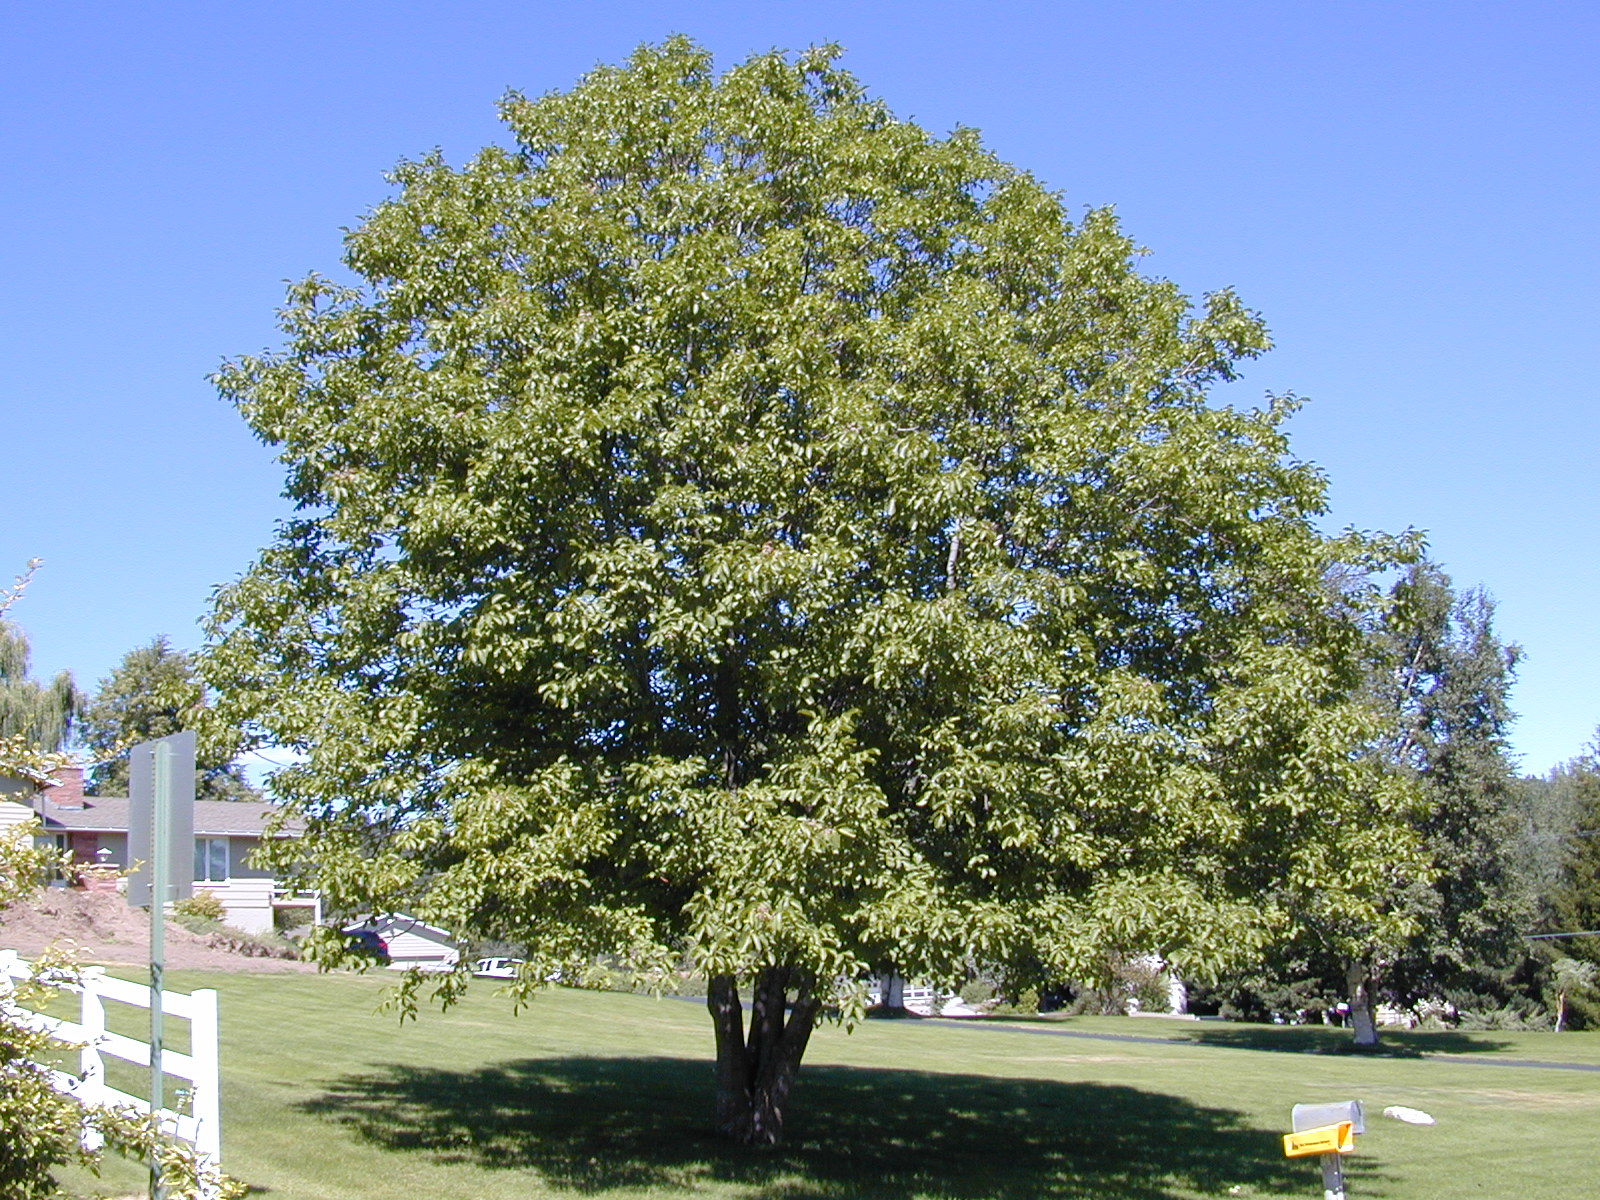 Trees of Santa Cruz County: Juglans regia - English Walnut